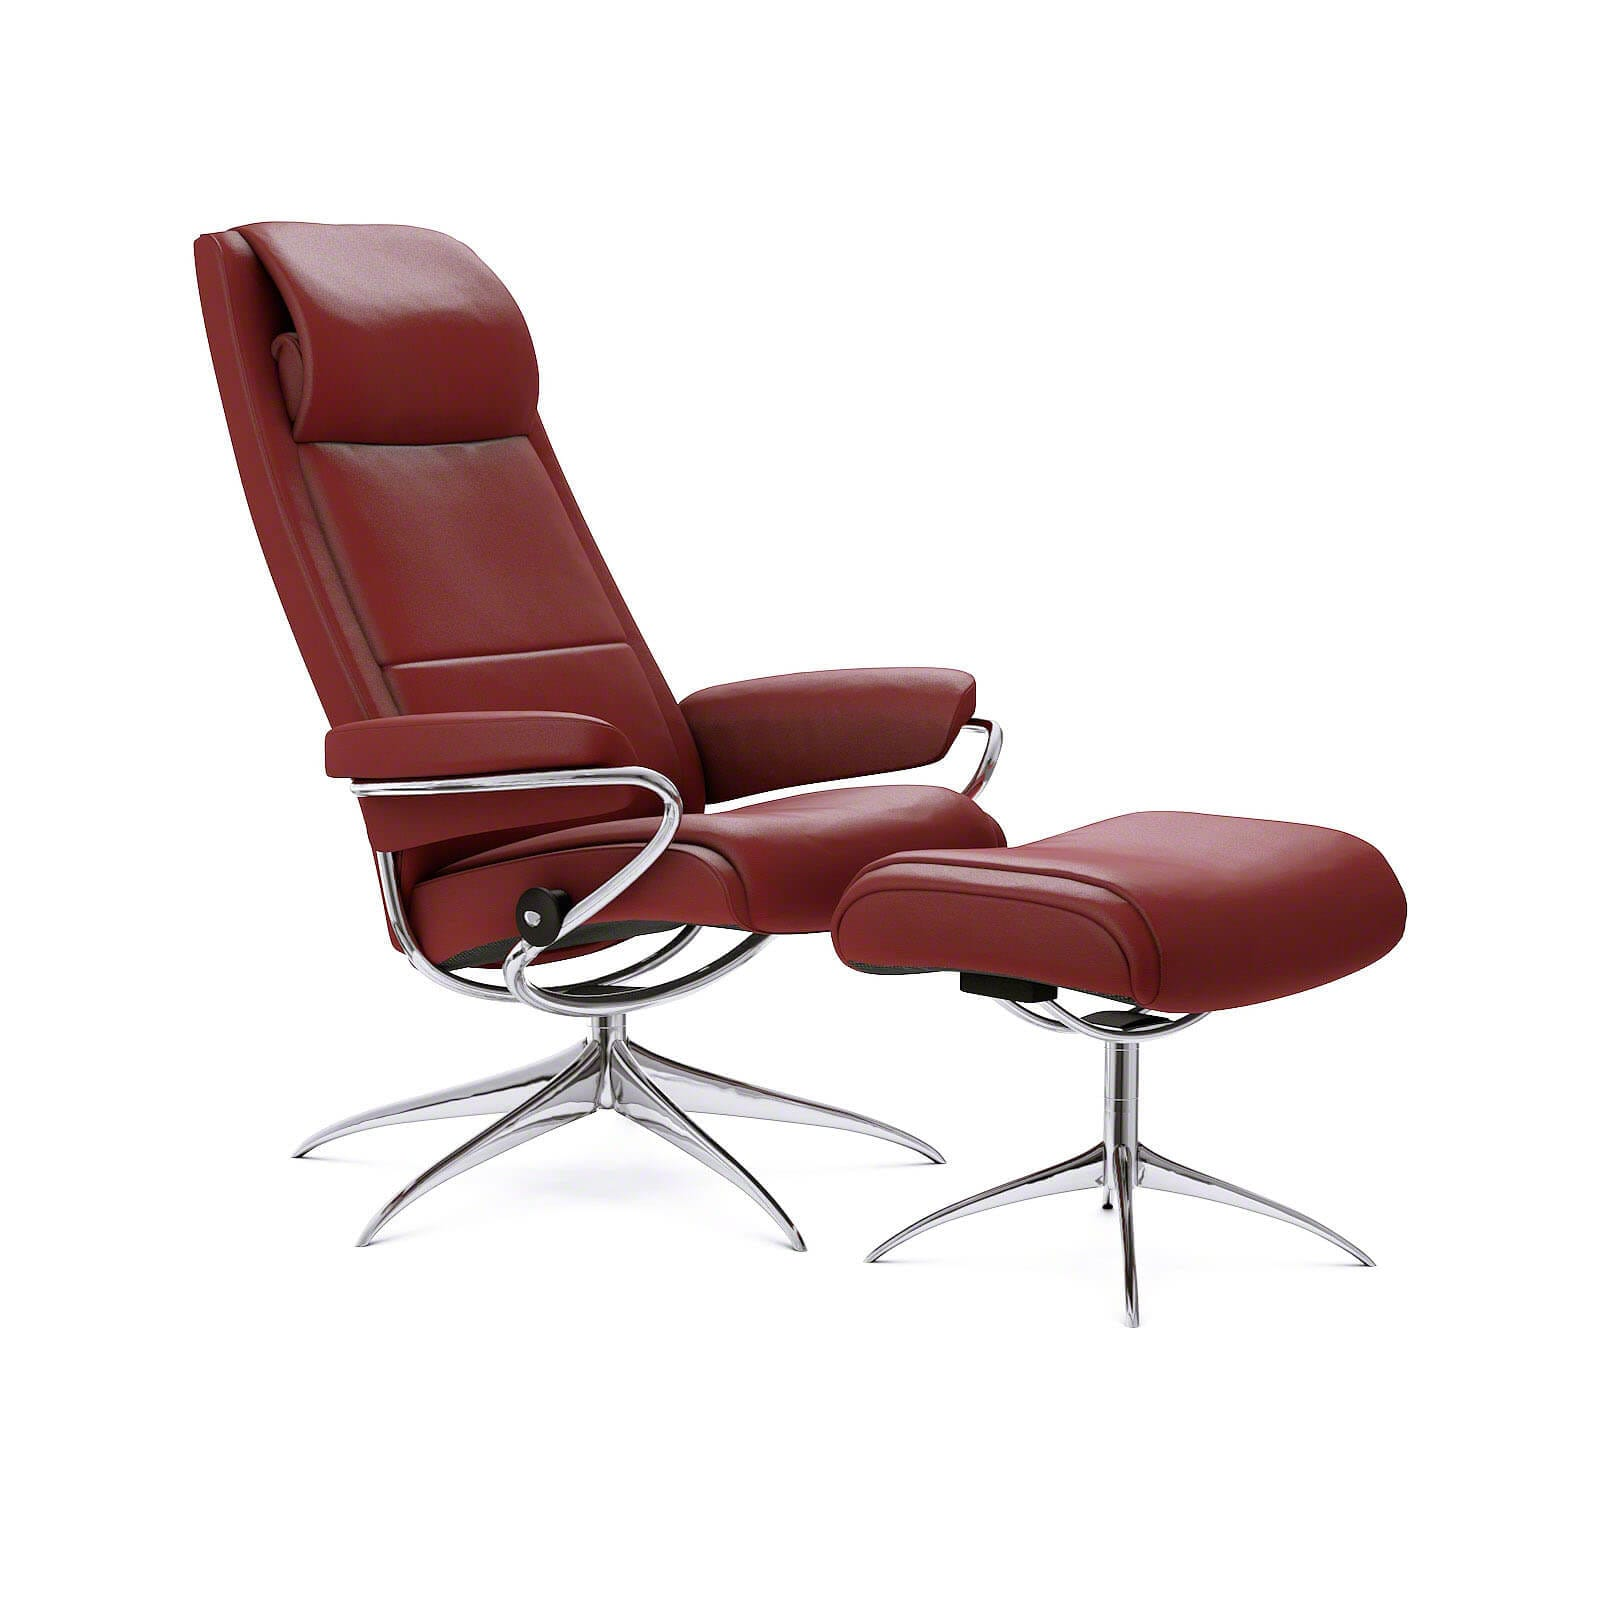 Stressless paris sessel paloma cherry hohe lehne stressless for Roter ledersessel